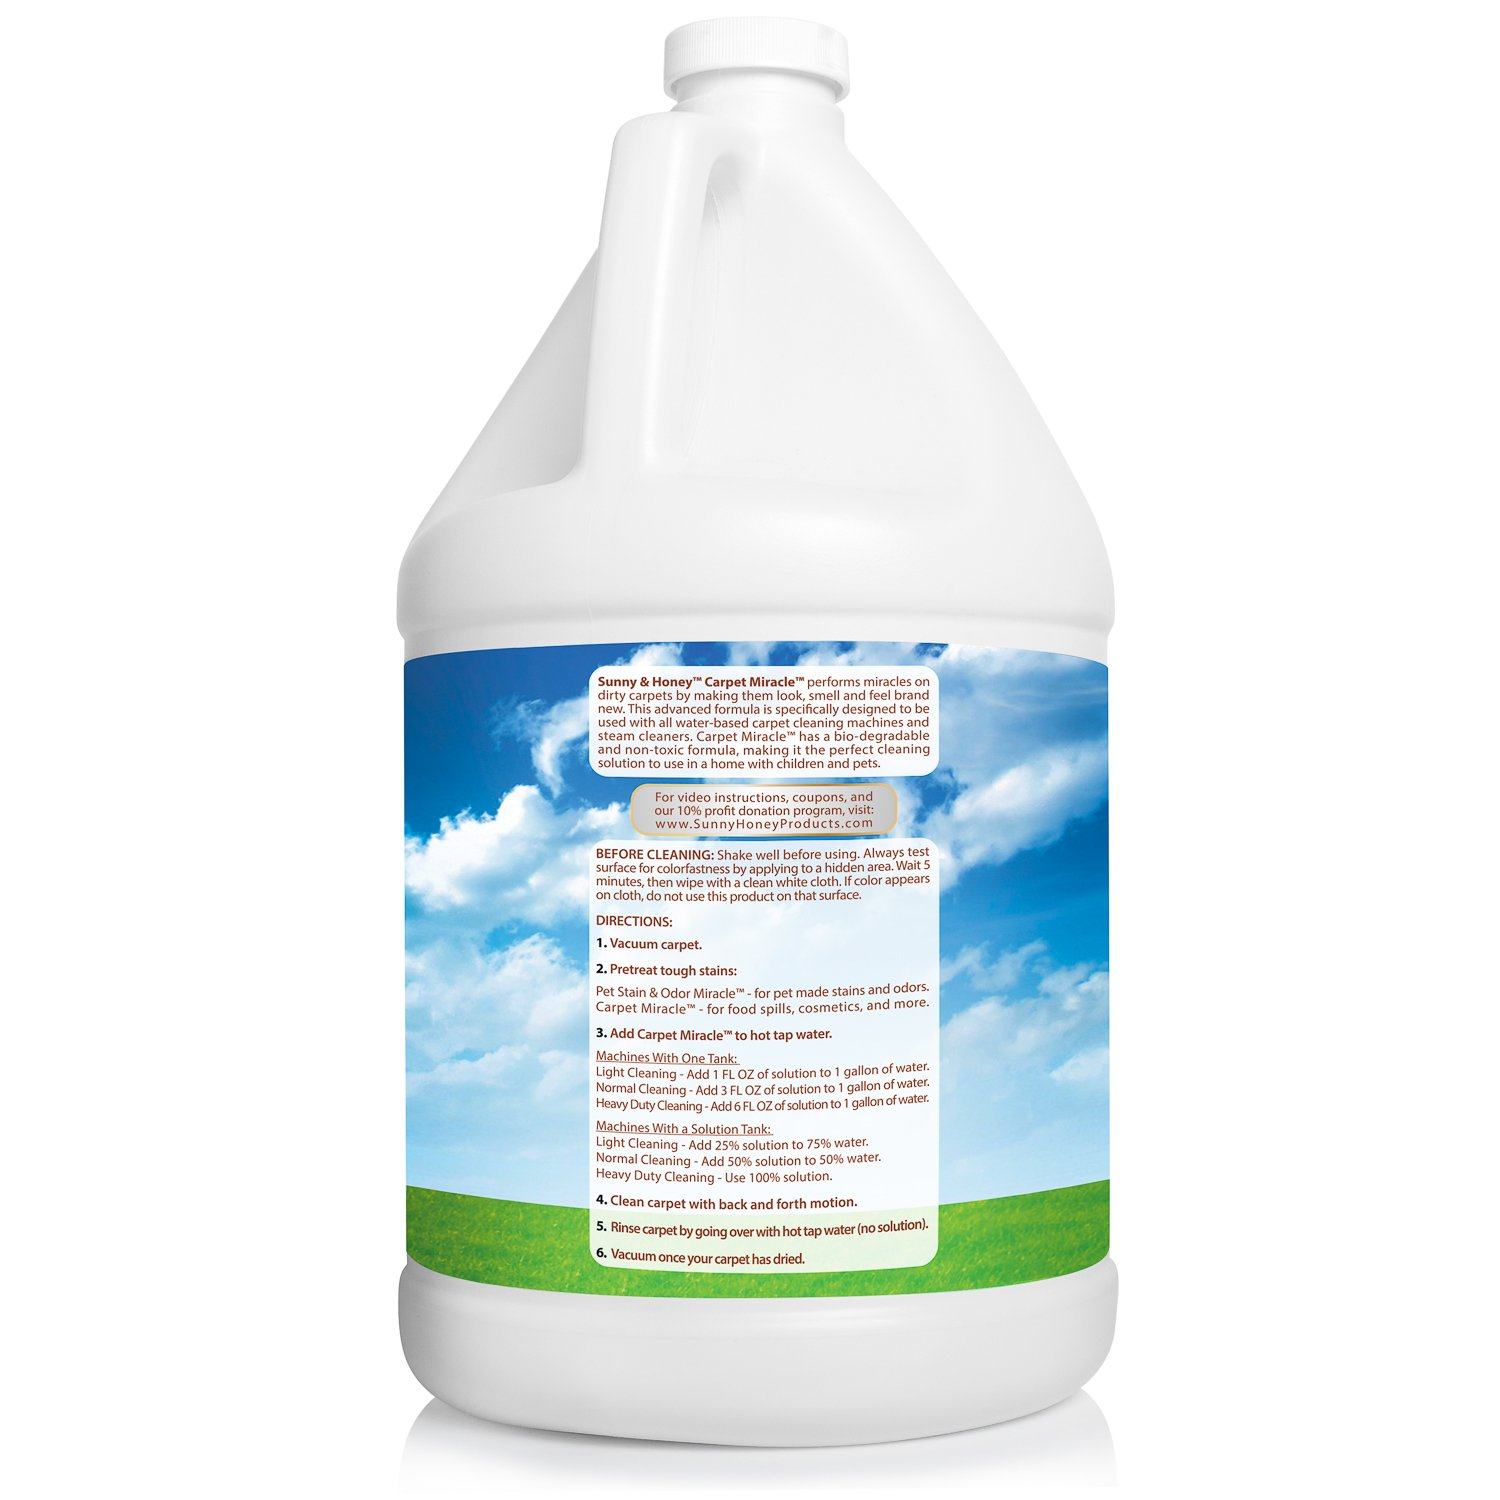 Amazon Carpet Miracle Carpet Cleaner and Deodorizer Solution